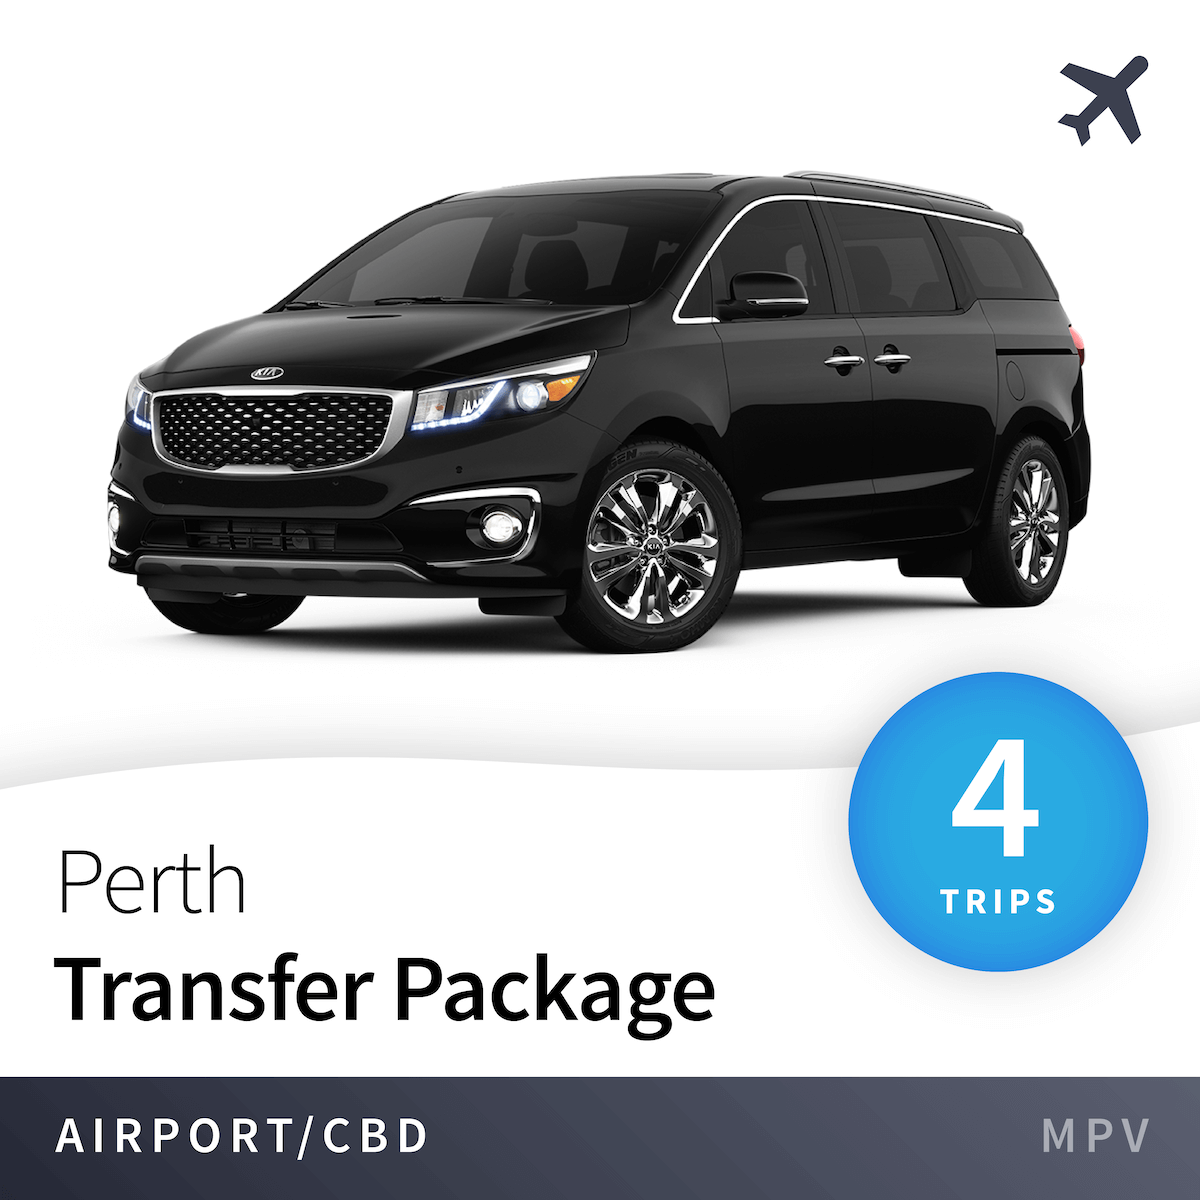 Perth Airport Transfer Package - MPV (4 Trips) 1